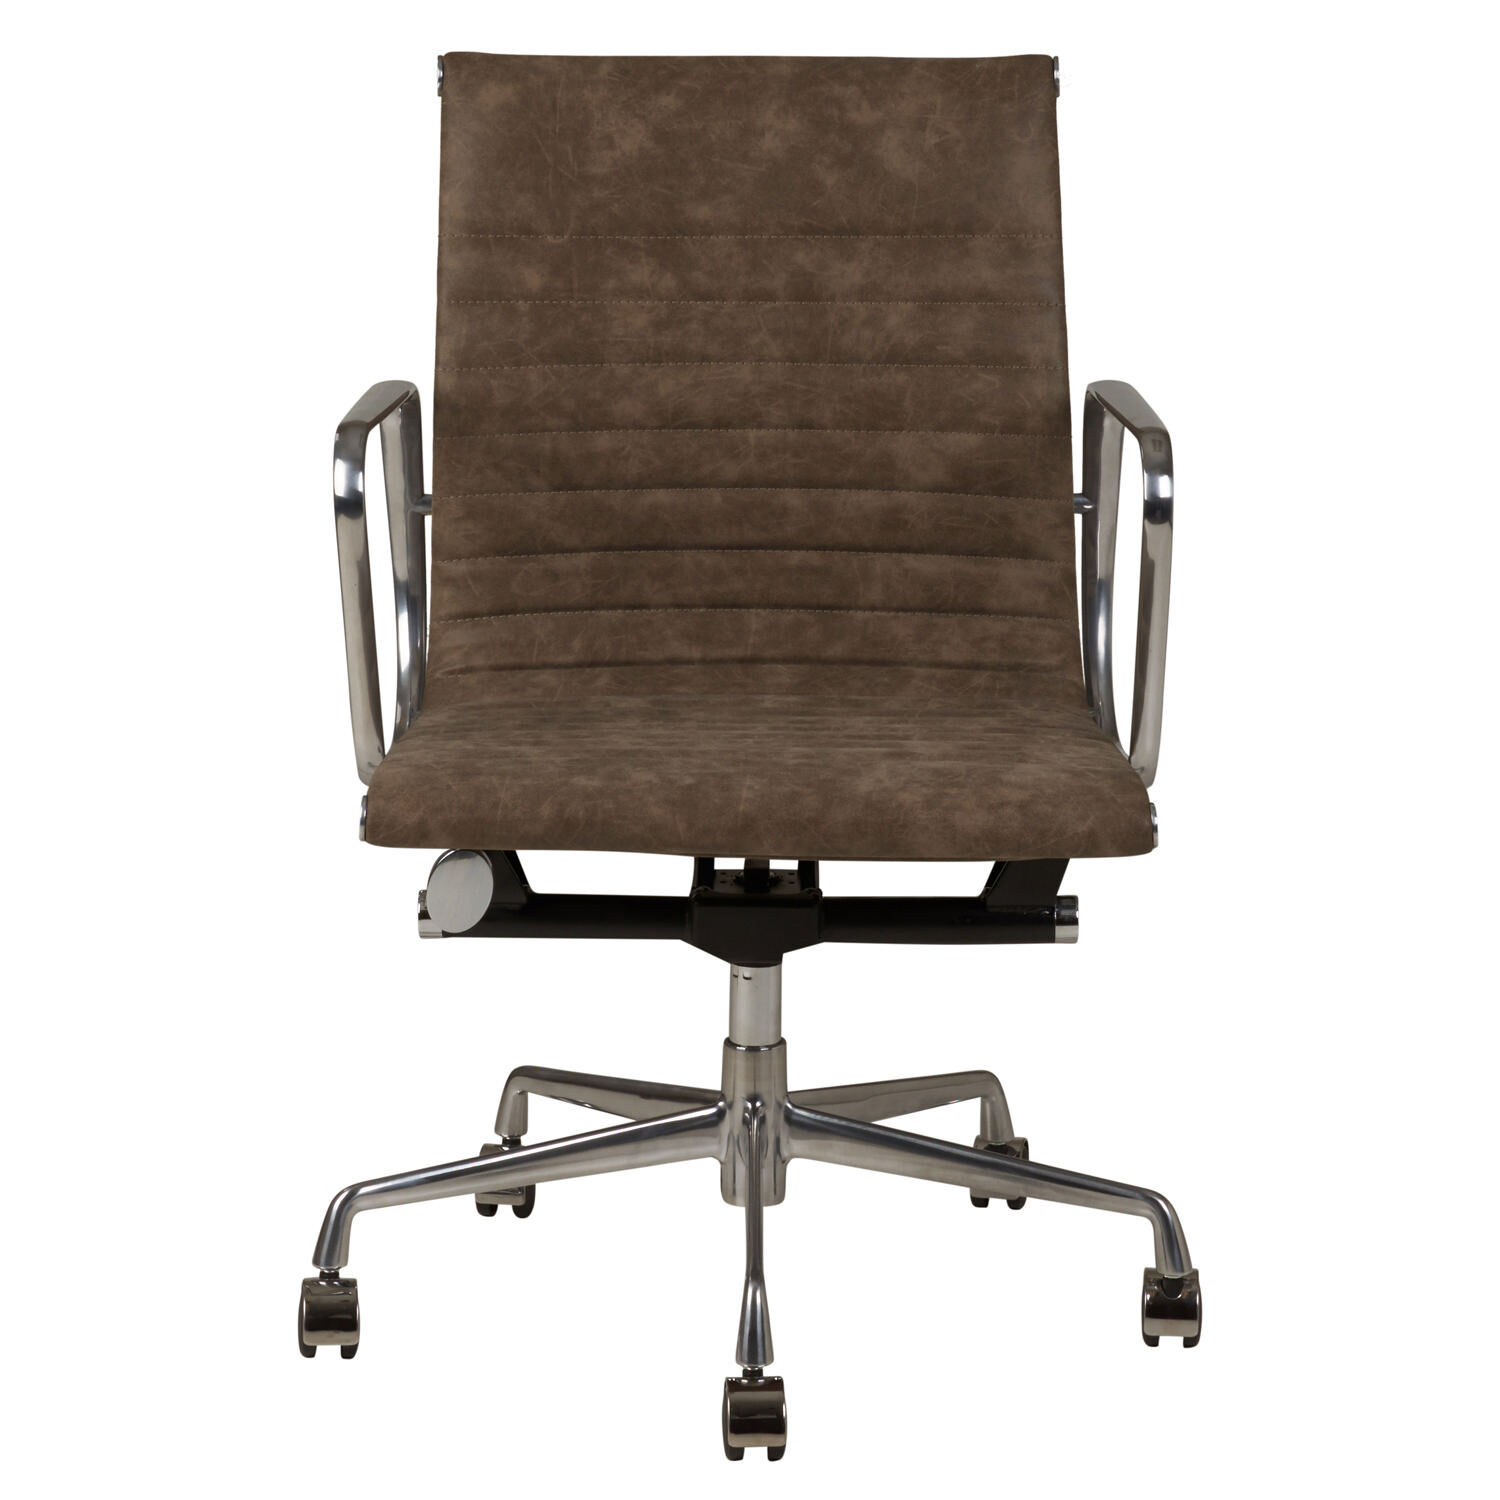 Saddle Office Chair Swift Office Chair Aged Saddle